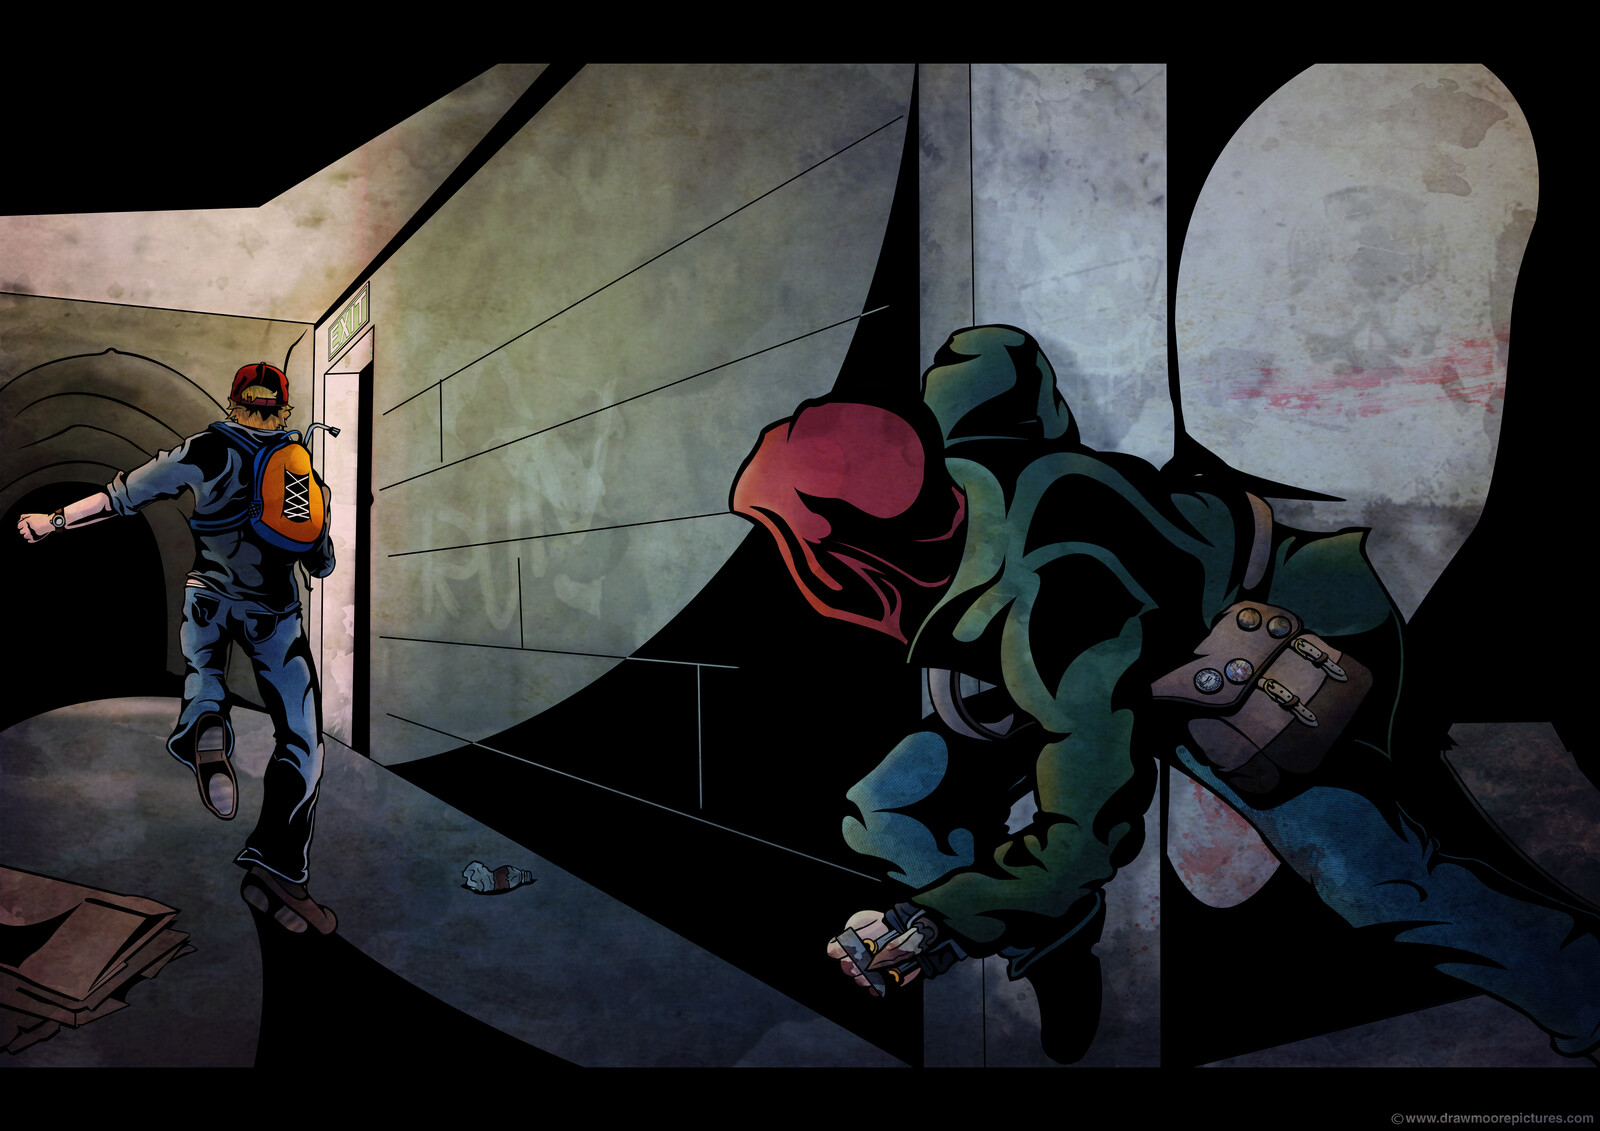 Action concept art where Tracey flees from an enemy in the dark tunnels under the city. One of the older pieces made. Tried to capture movement and speed, but perhaps at the cost of a moody and scary background?